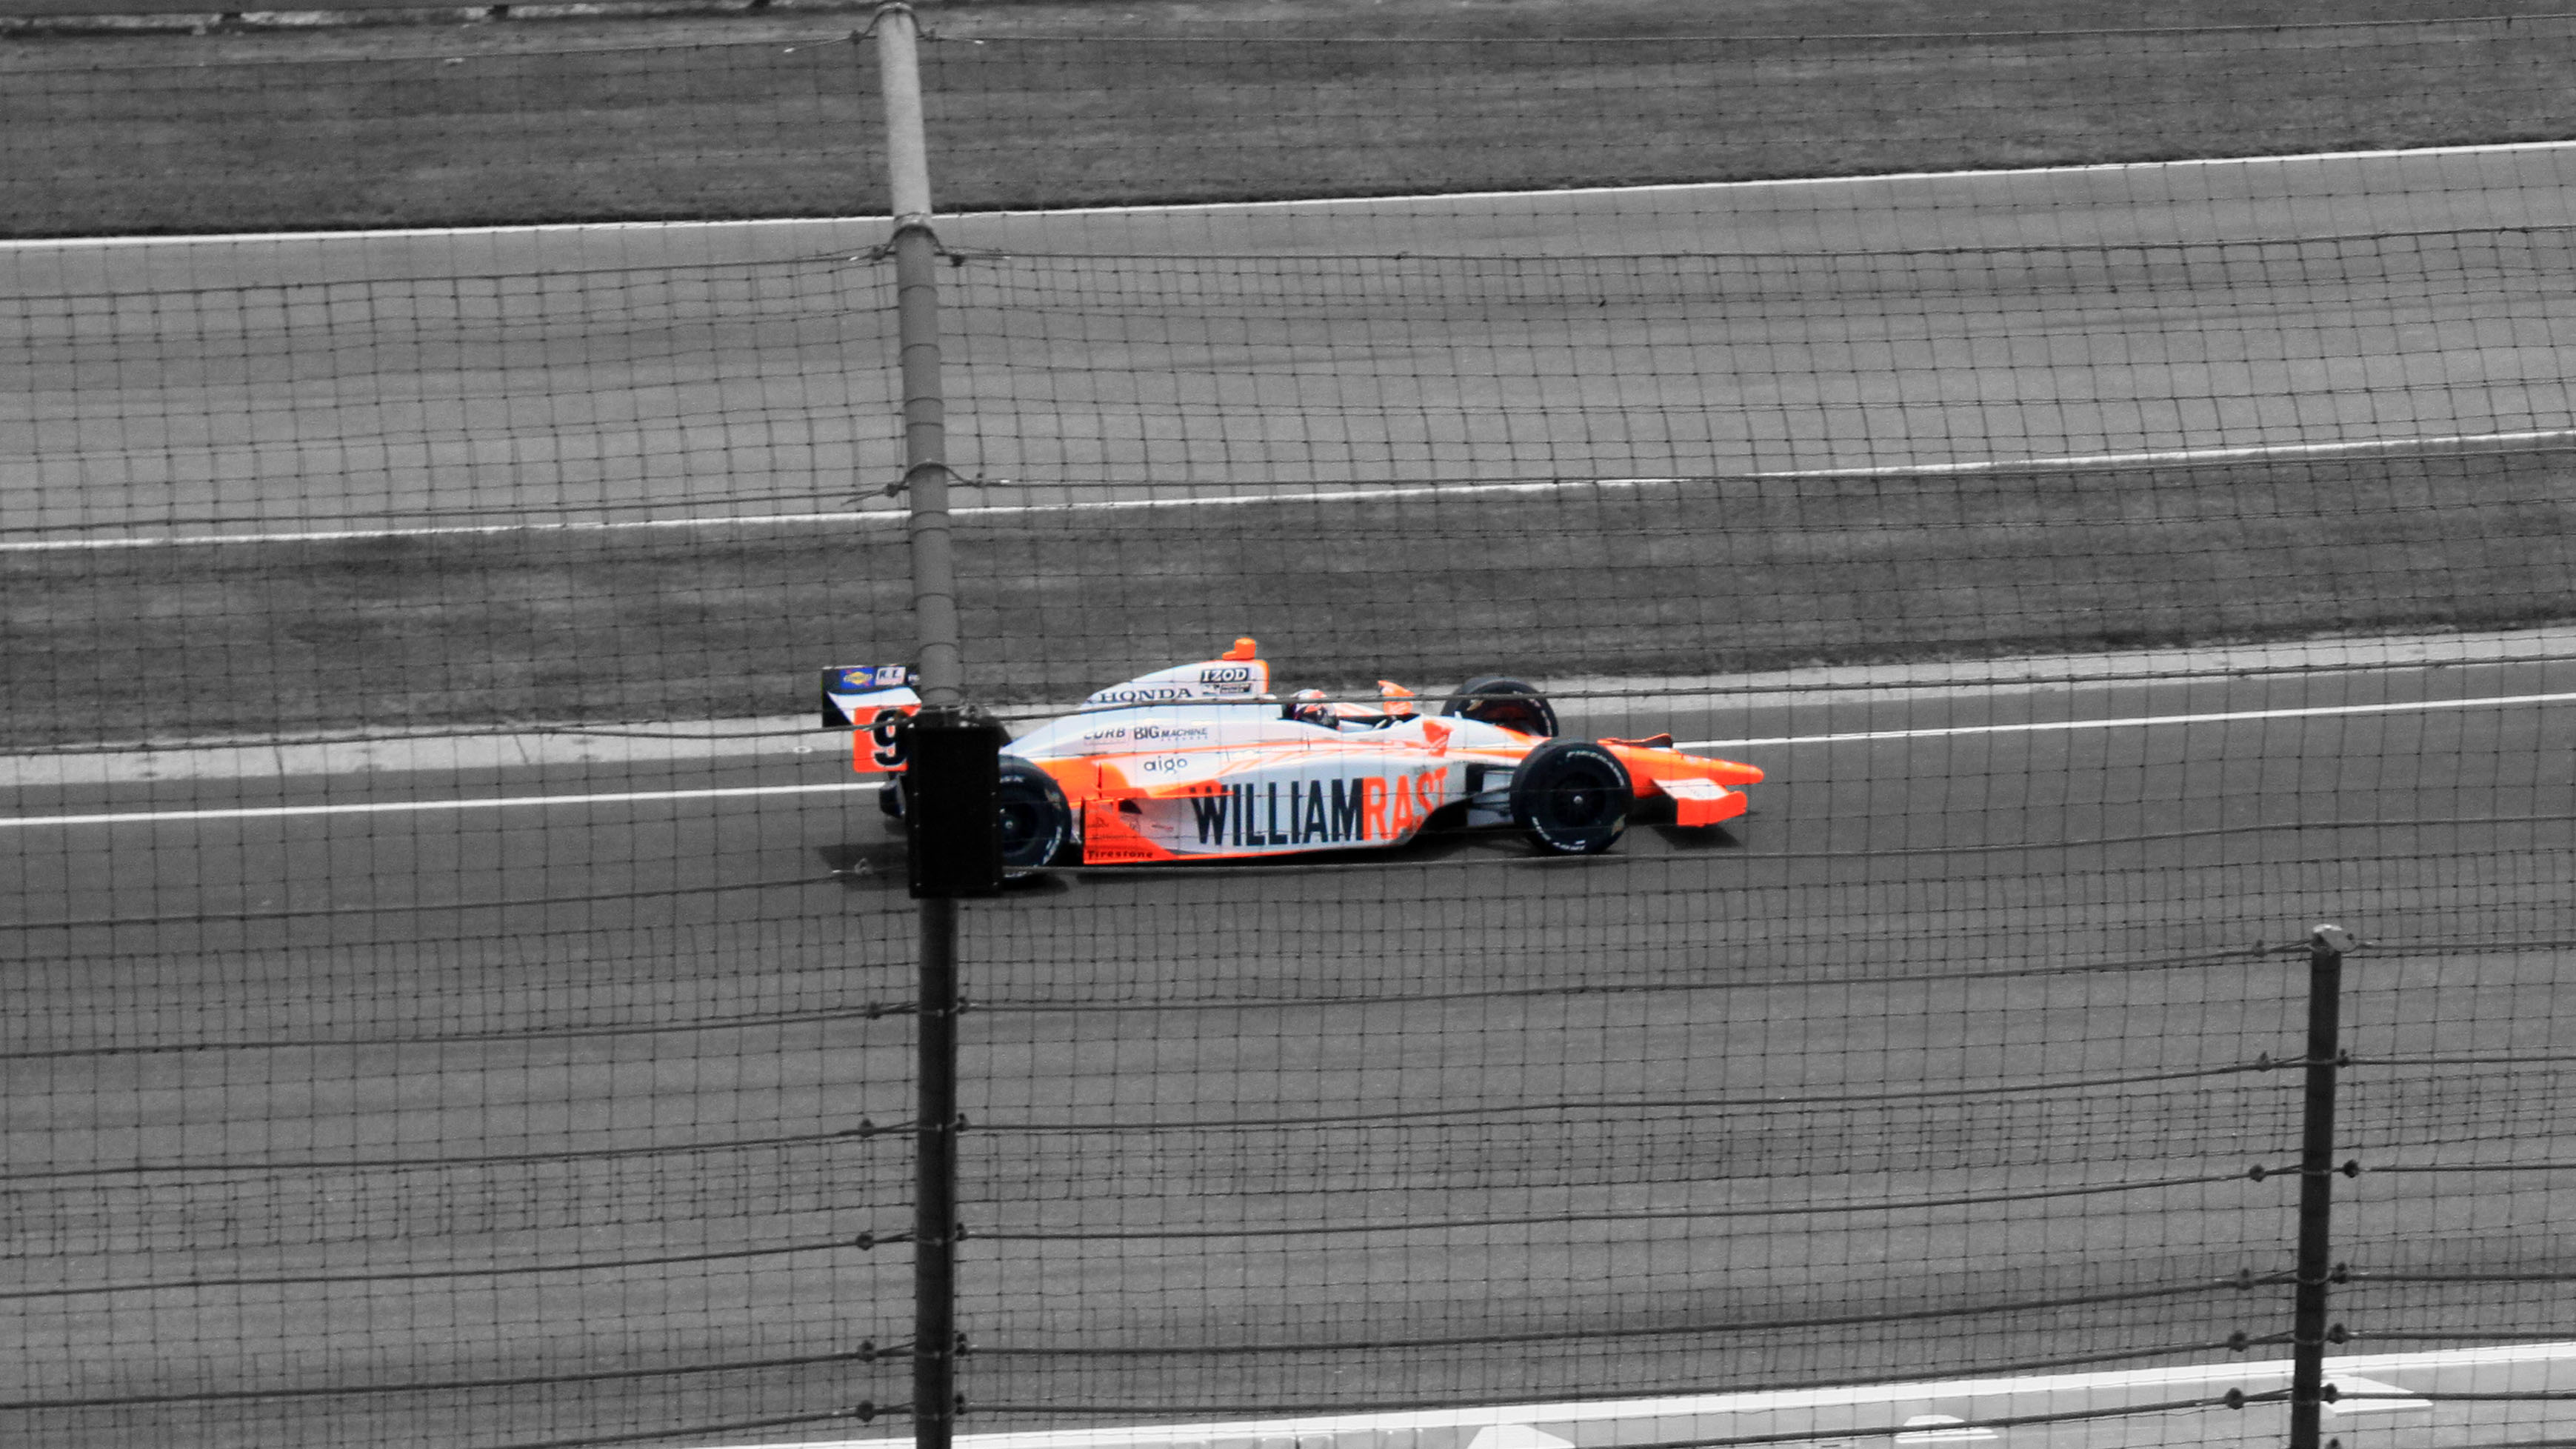 Dan Wheldon's in turn three during his victory lap at the Centennial Indianapolis 500